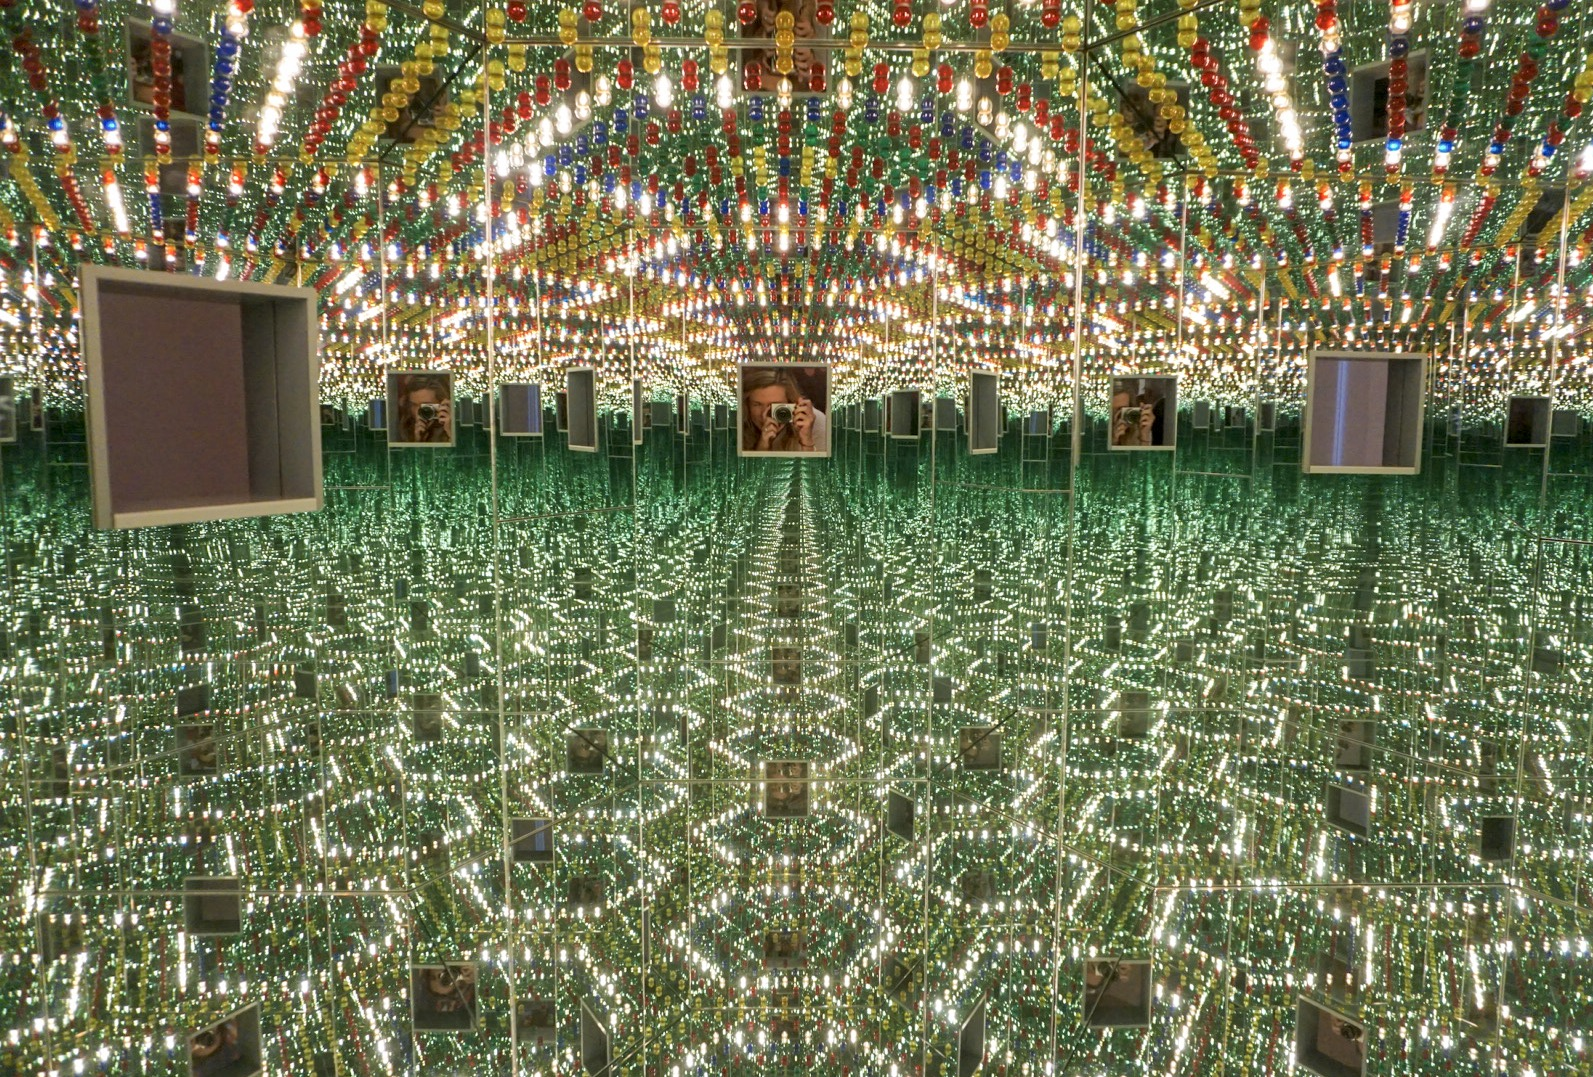 Yayoi Kusama, Infinity Mirrors, High Museum of Art